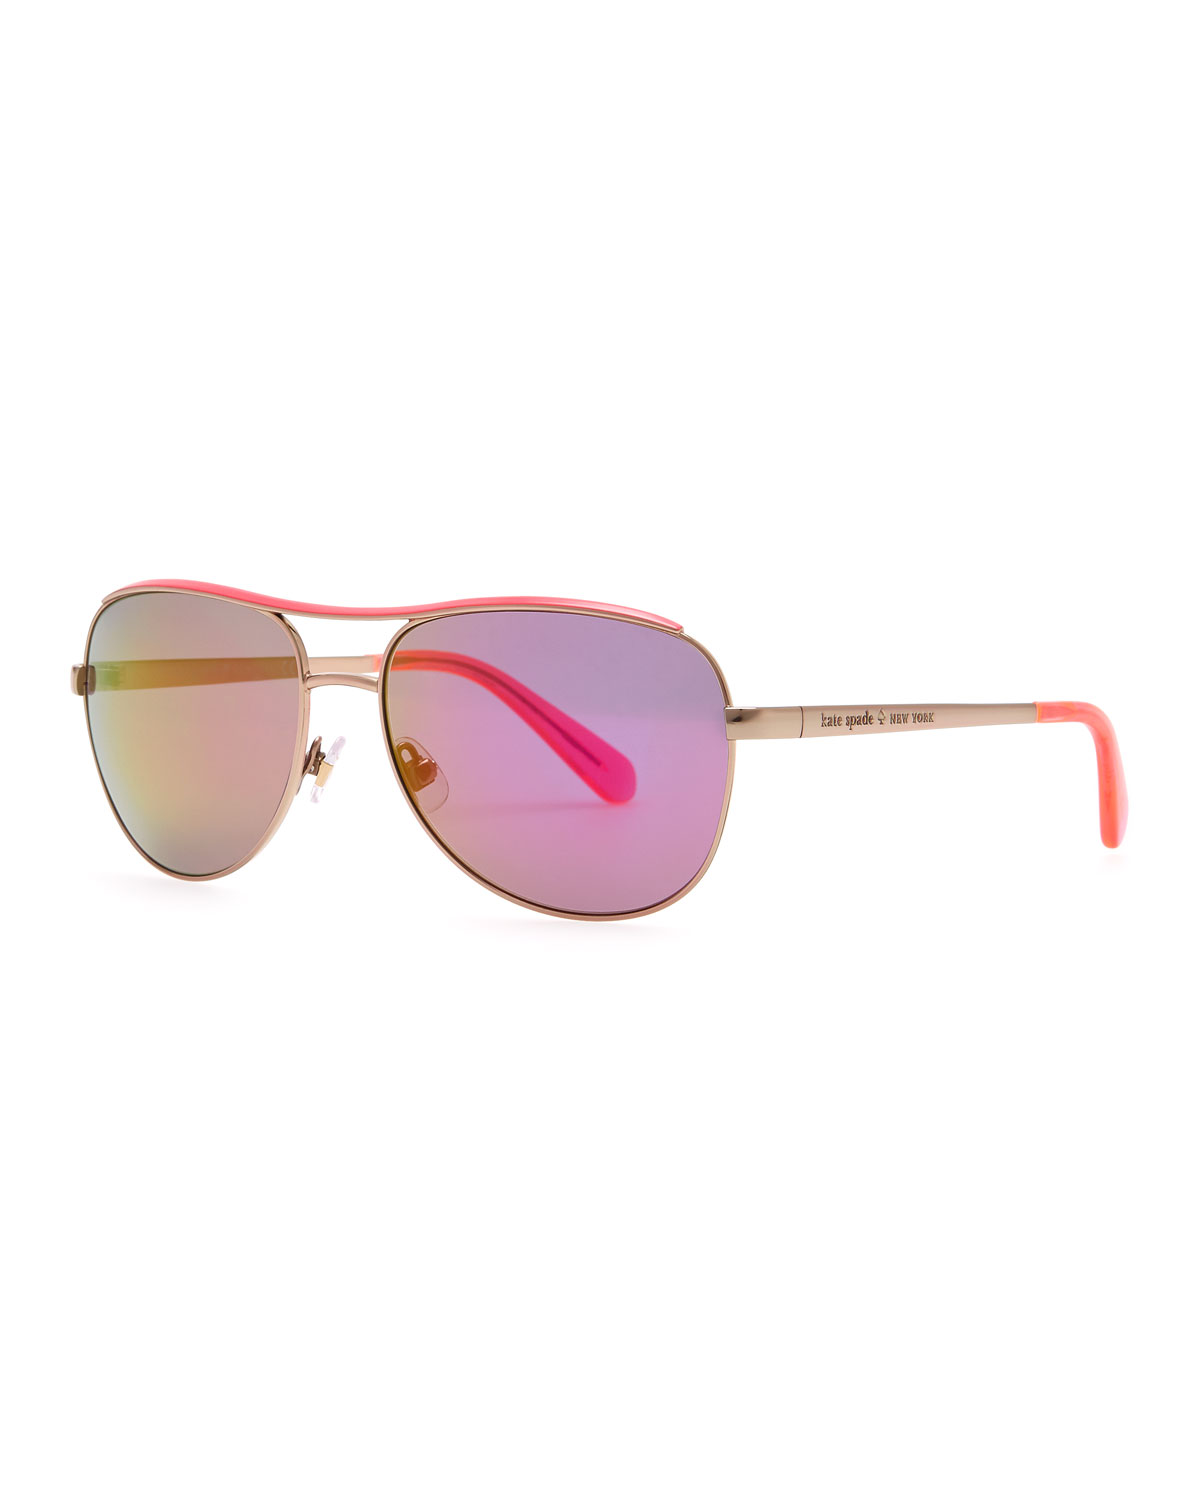 dusty aviator sunglasses, rose gold/pink   kate spade new york   Rose gold